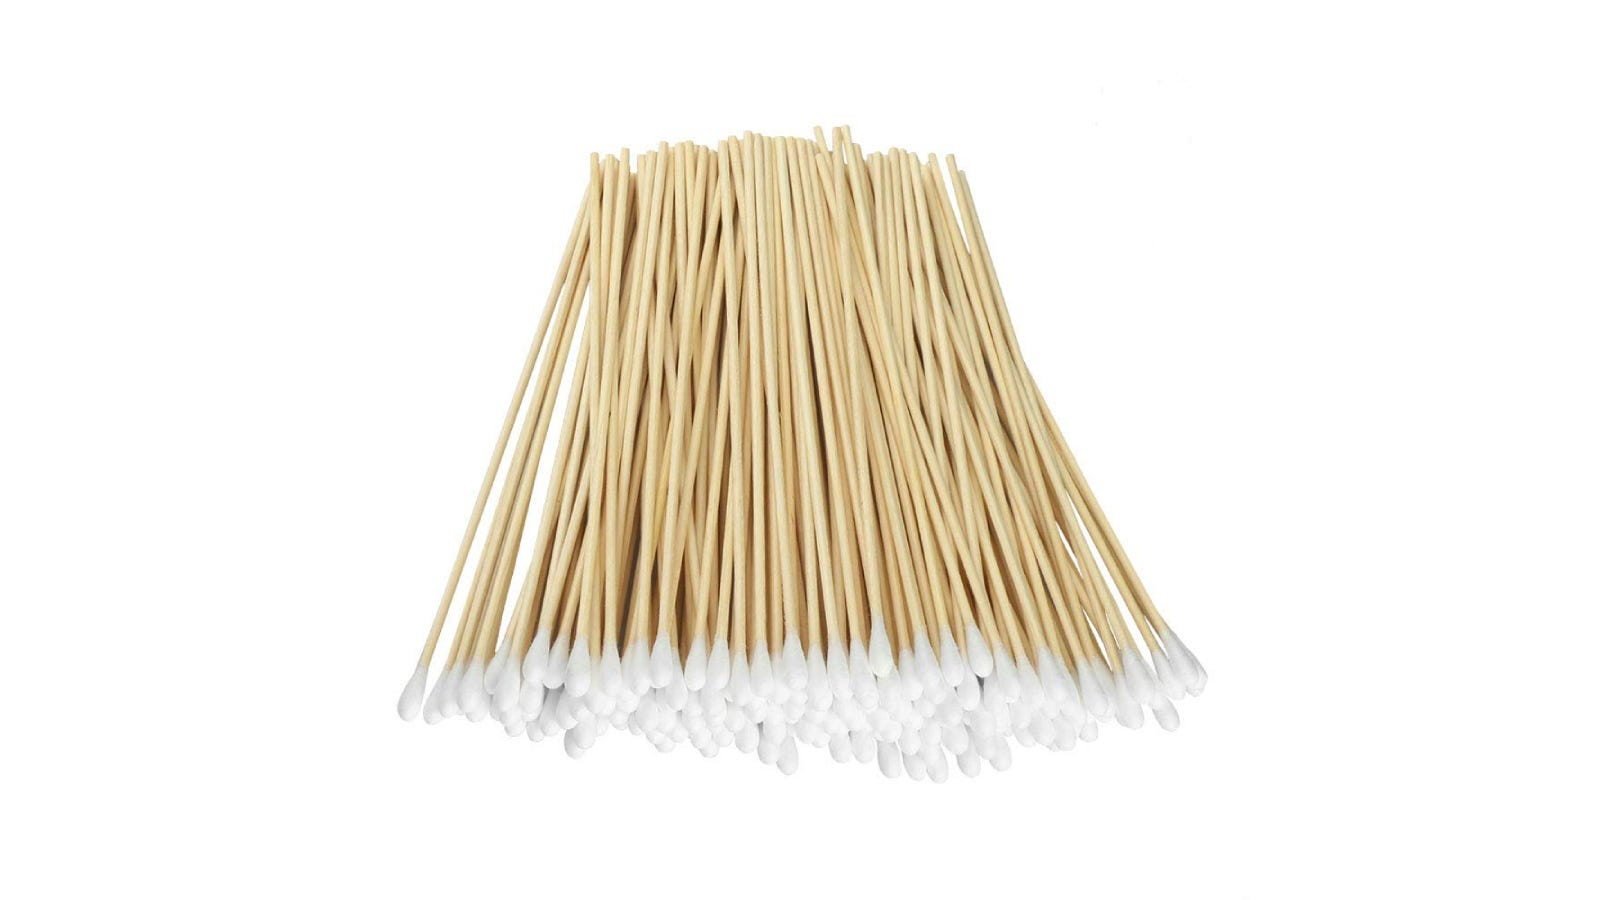 Long cotton swabs with wooden handles sitting in a pile.